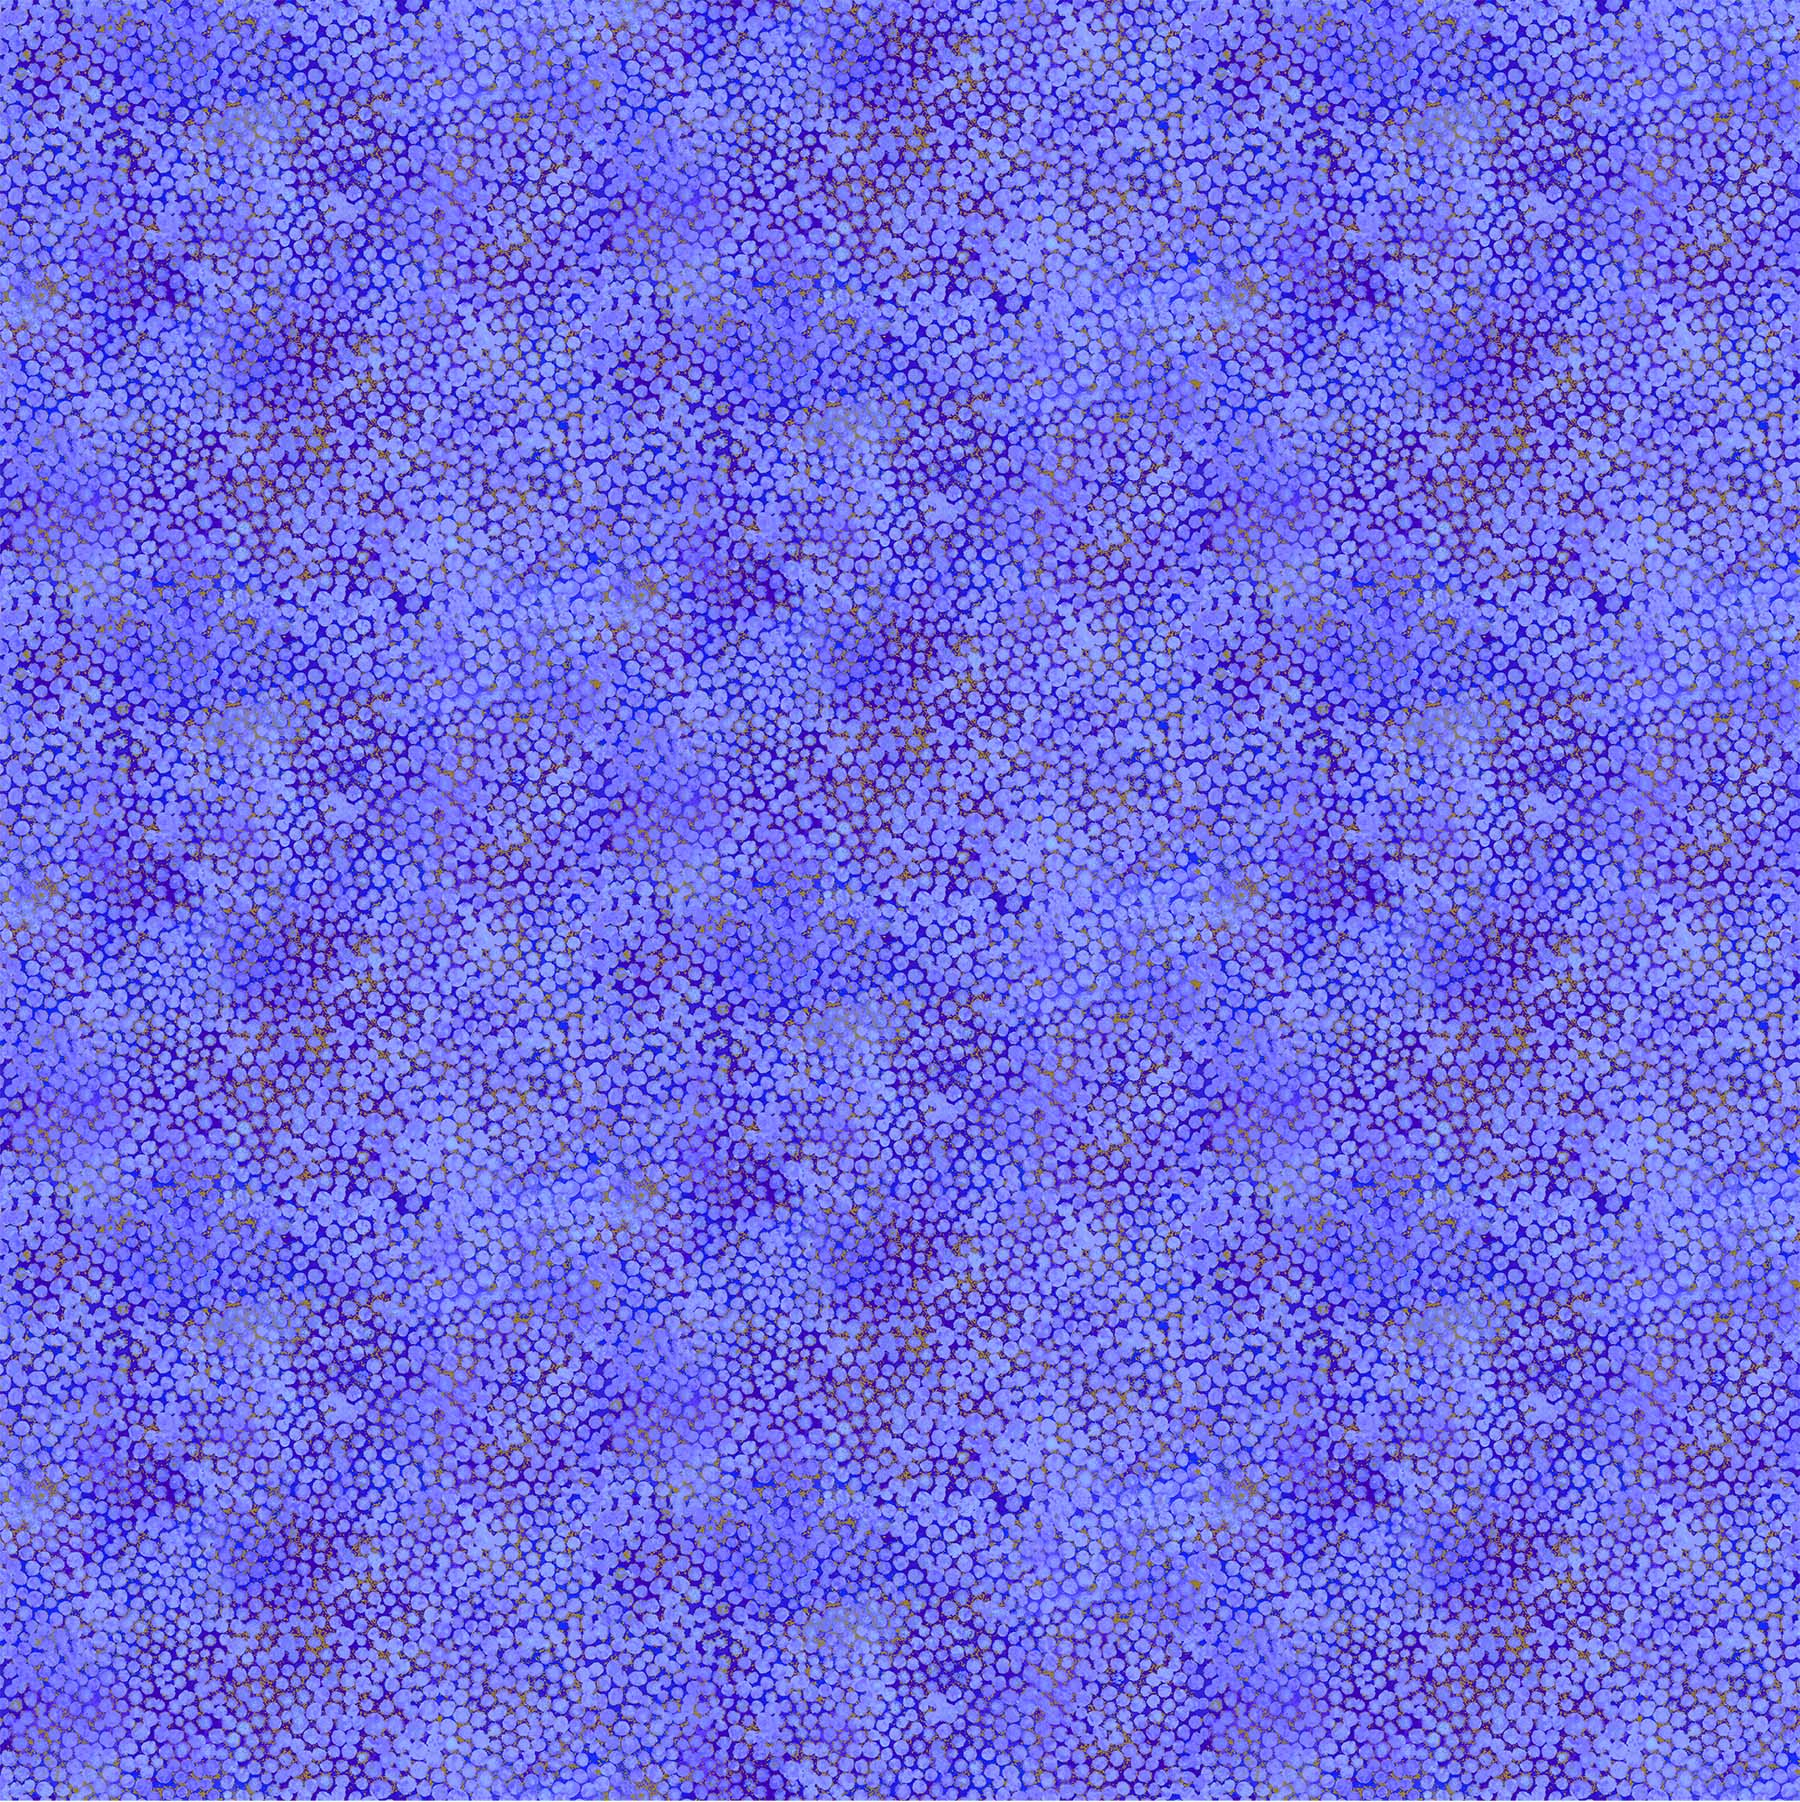 SHIMMER WILD THING BLUE PURPLE